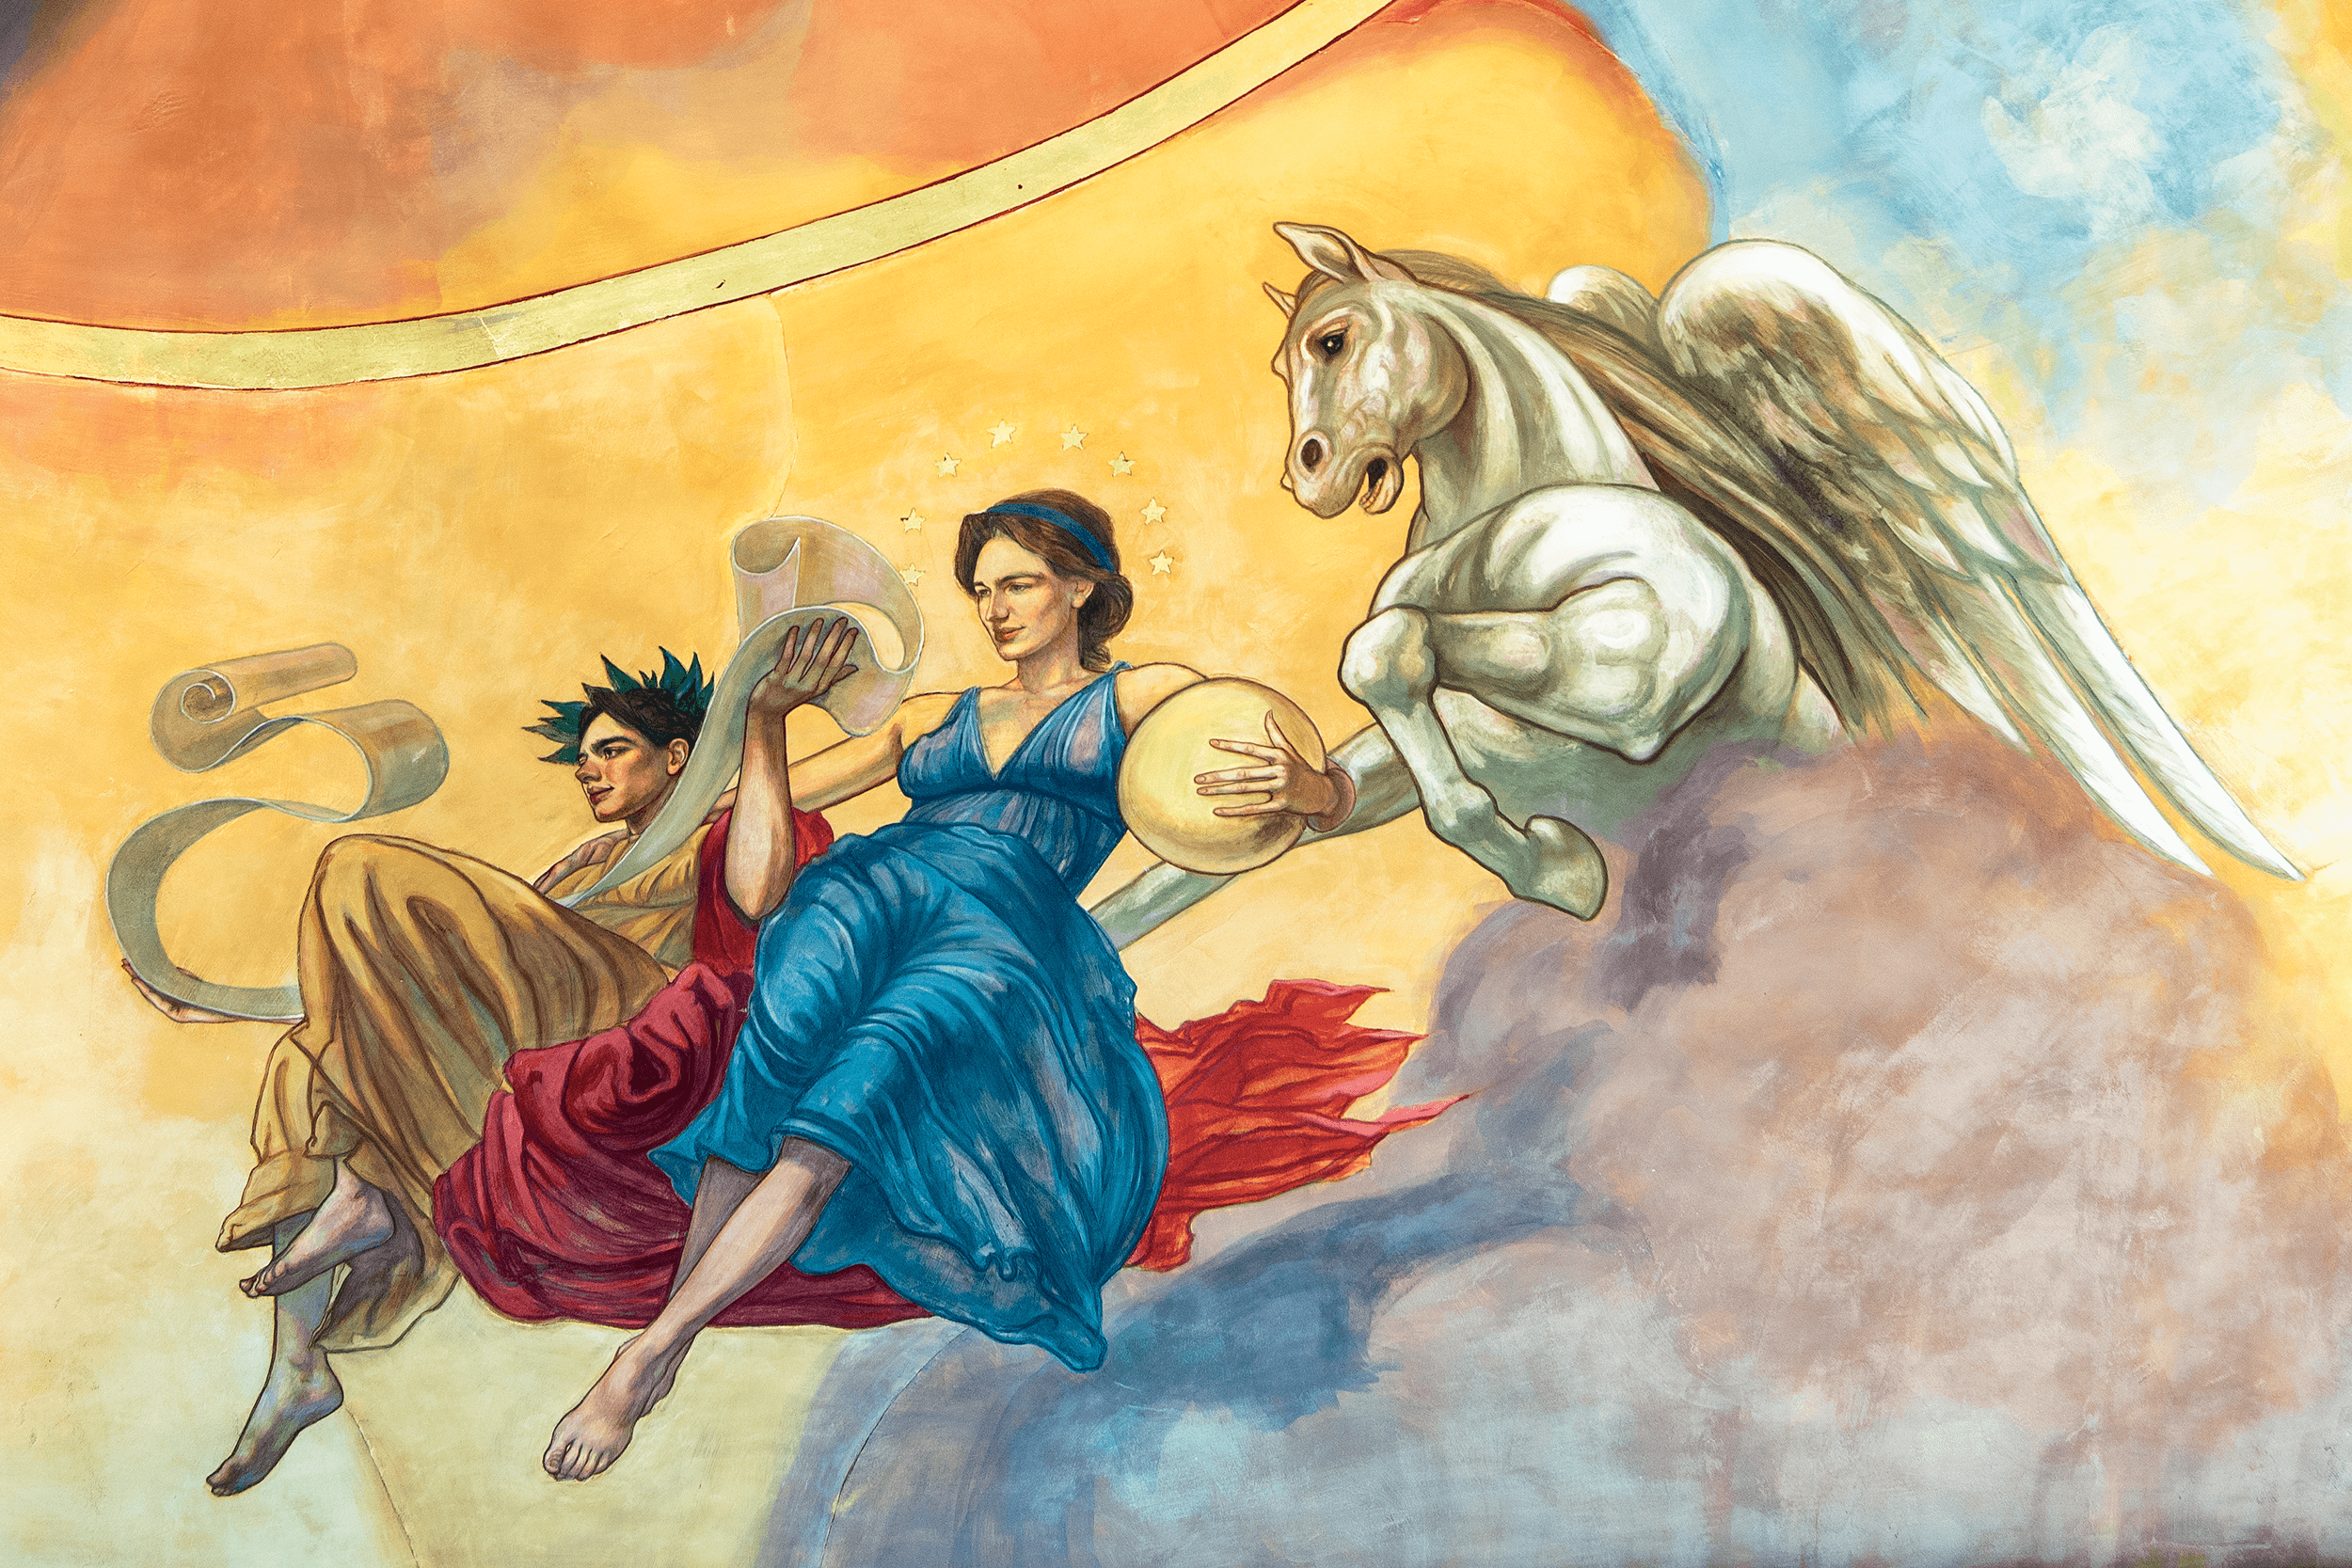 This group features  Urania , the Goddess of Astronomy, at the center surrounded by stars and holding a planet. She is accompanied by  Clio , the Goddess of History, holding a long roll of papyrus. From the clouds appears  Pegasus , a muscular winged divine stallion.